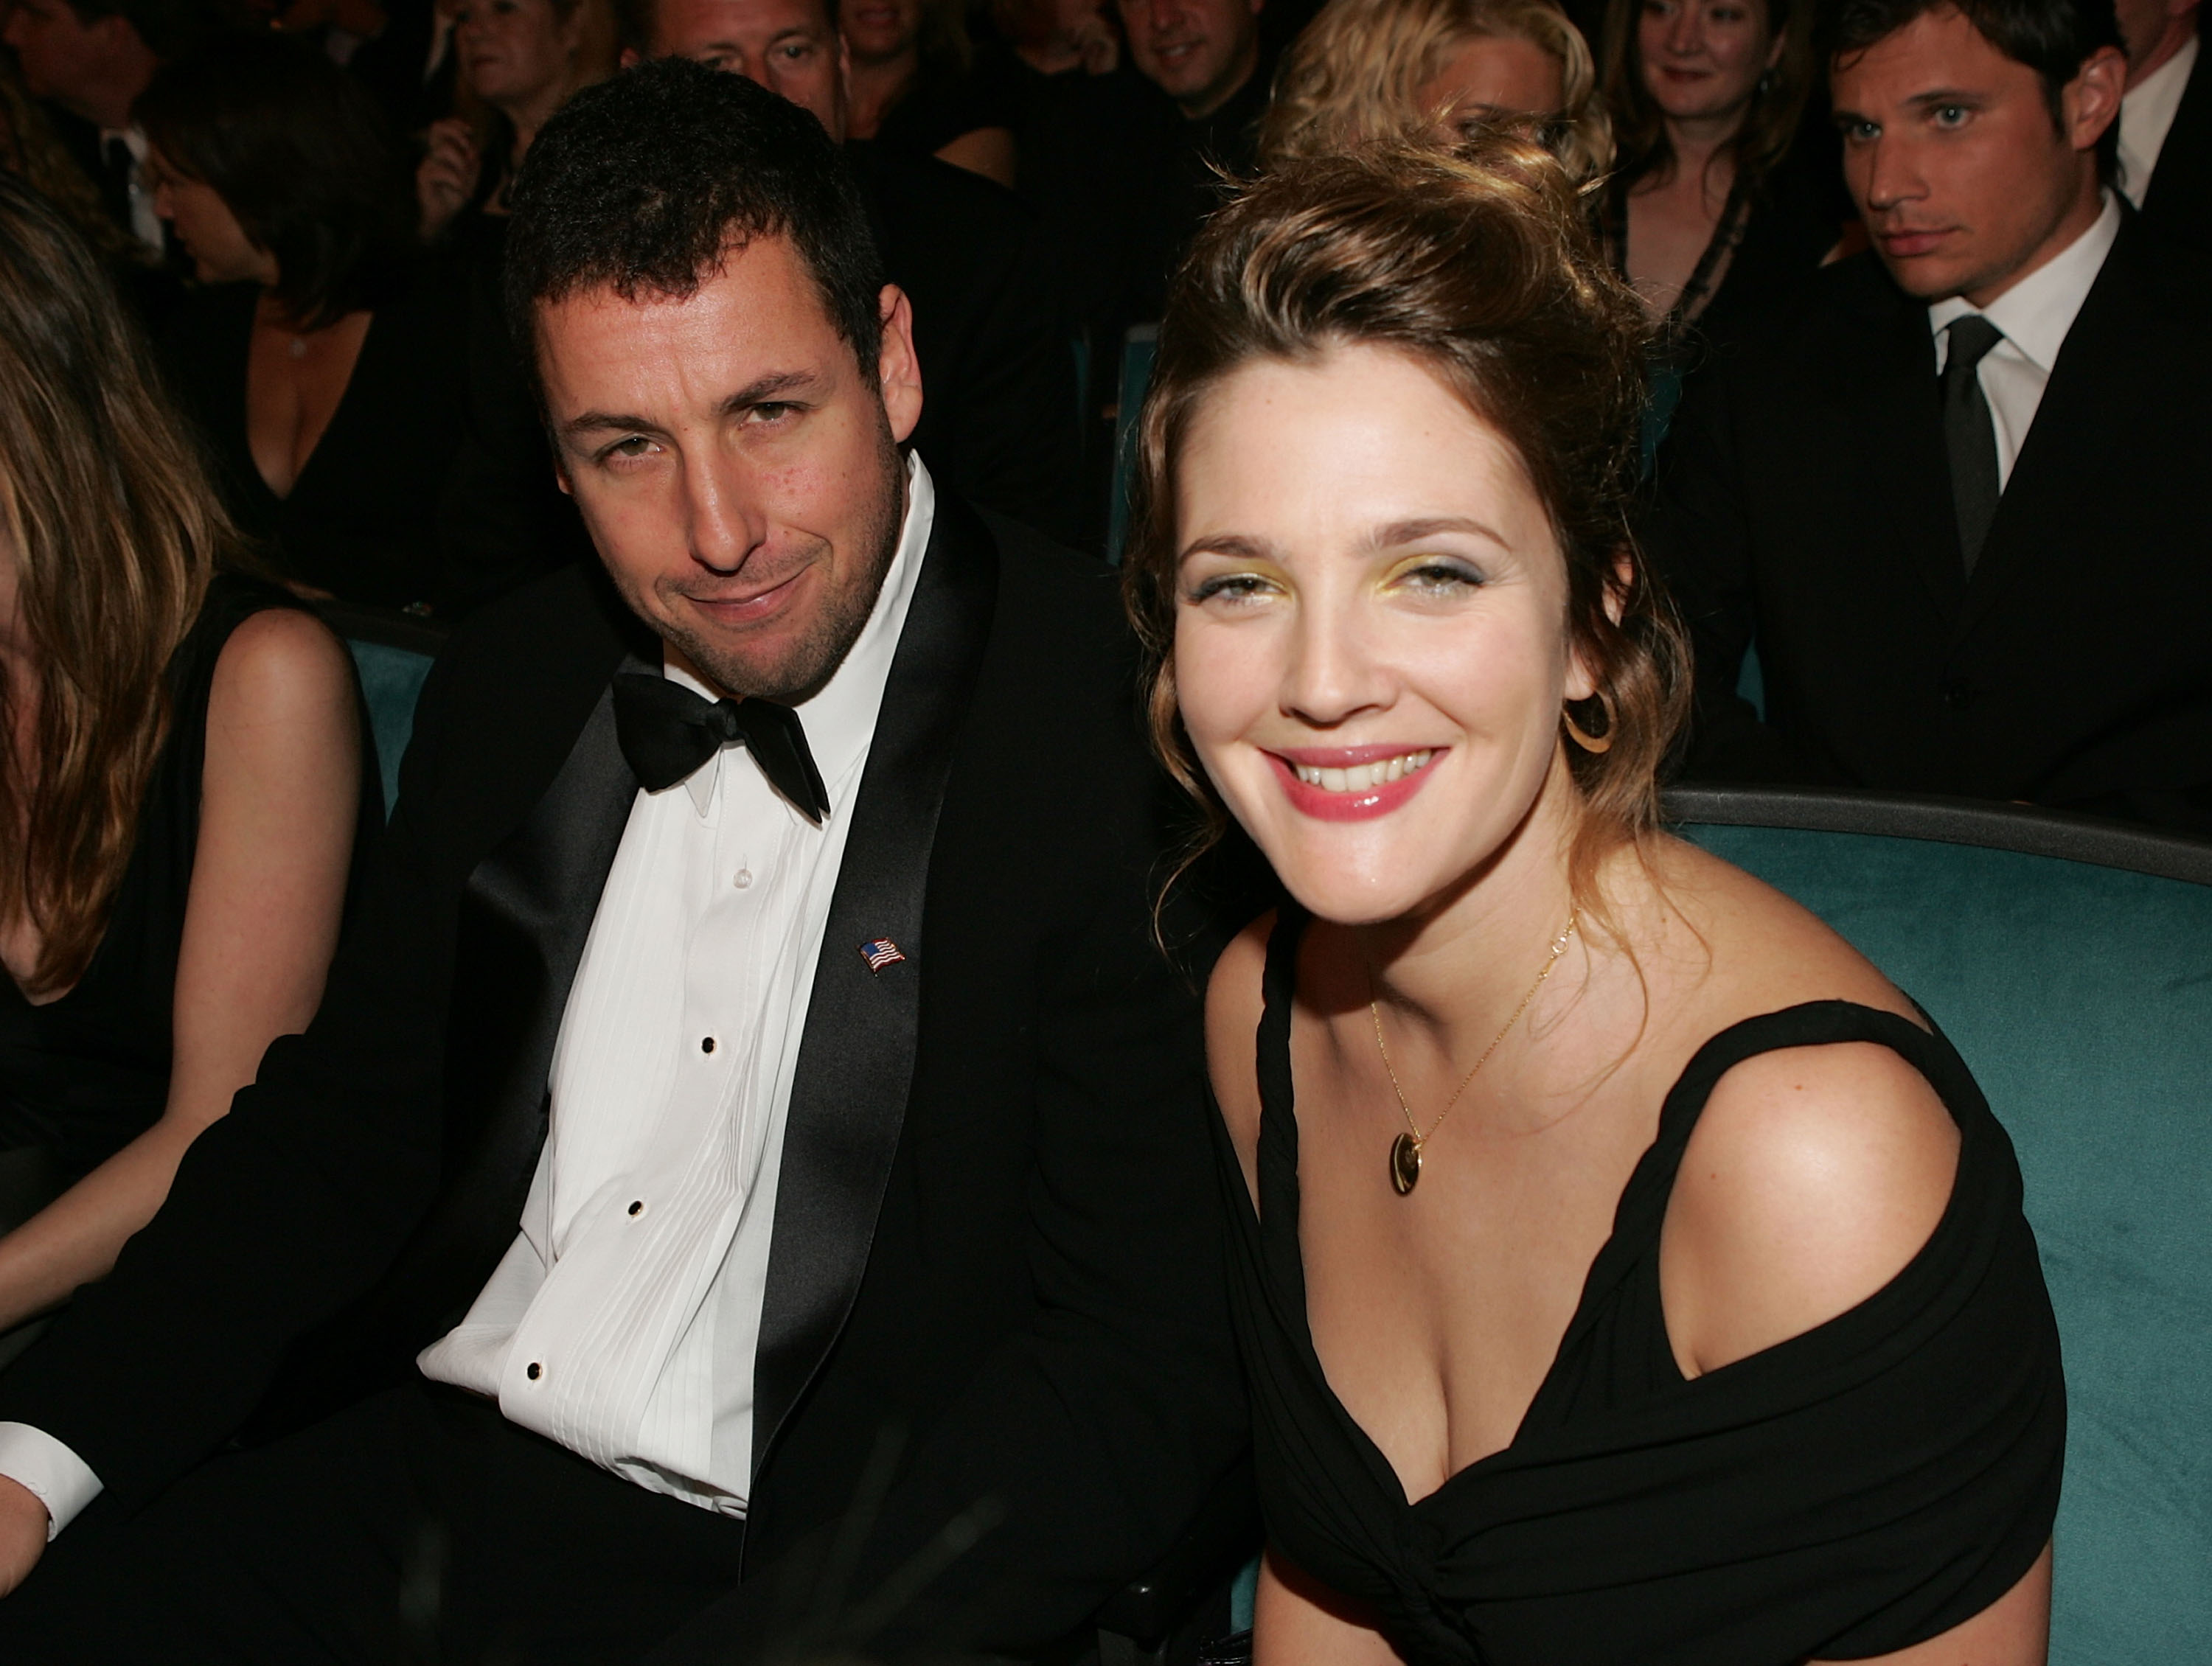 Blended Trailer Reminds Us Of The Best Adam Sandler Drew Barrymore Movie Moments